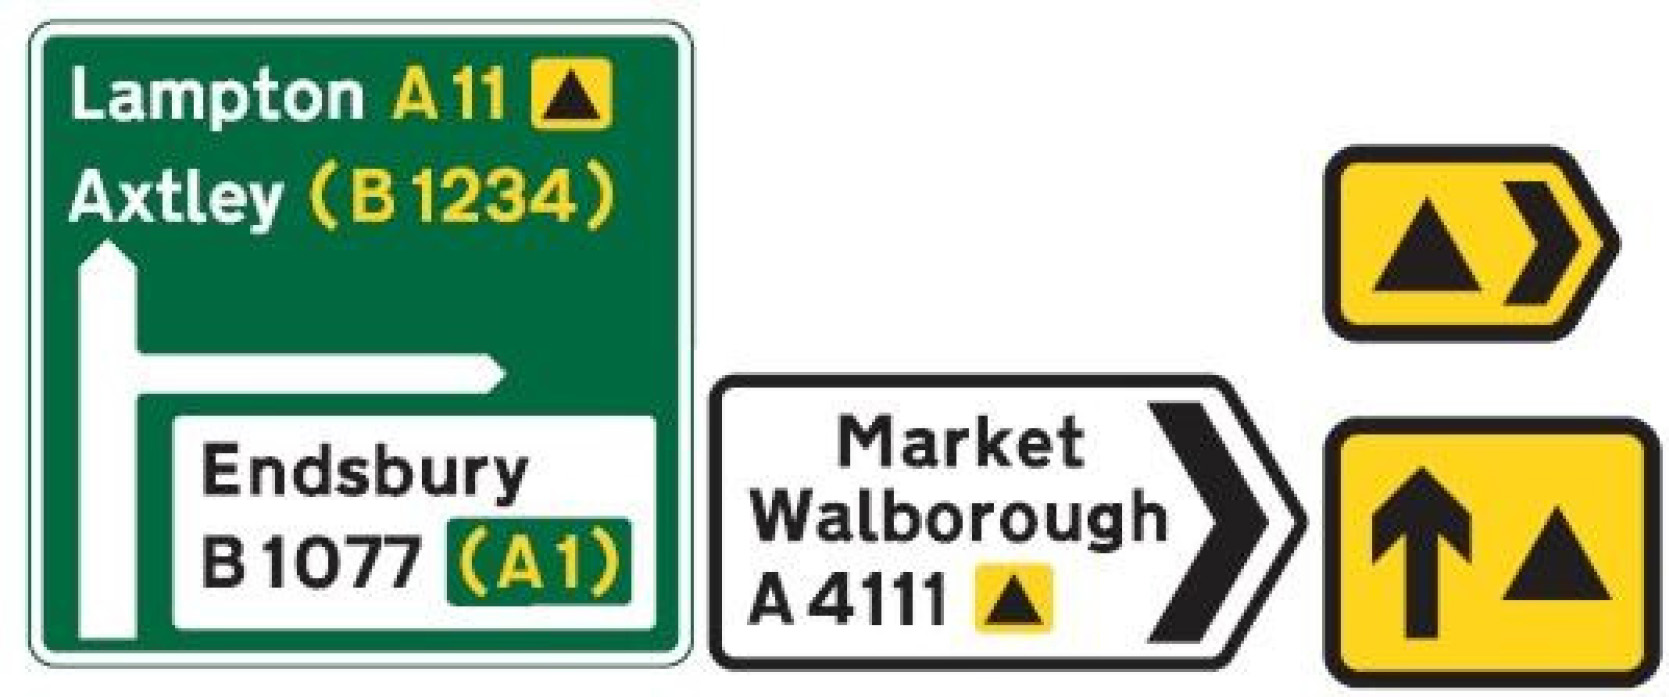 Riders and drivers should follow signs bearing the appropriate symbol